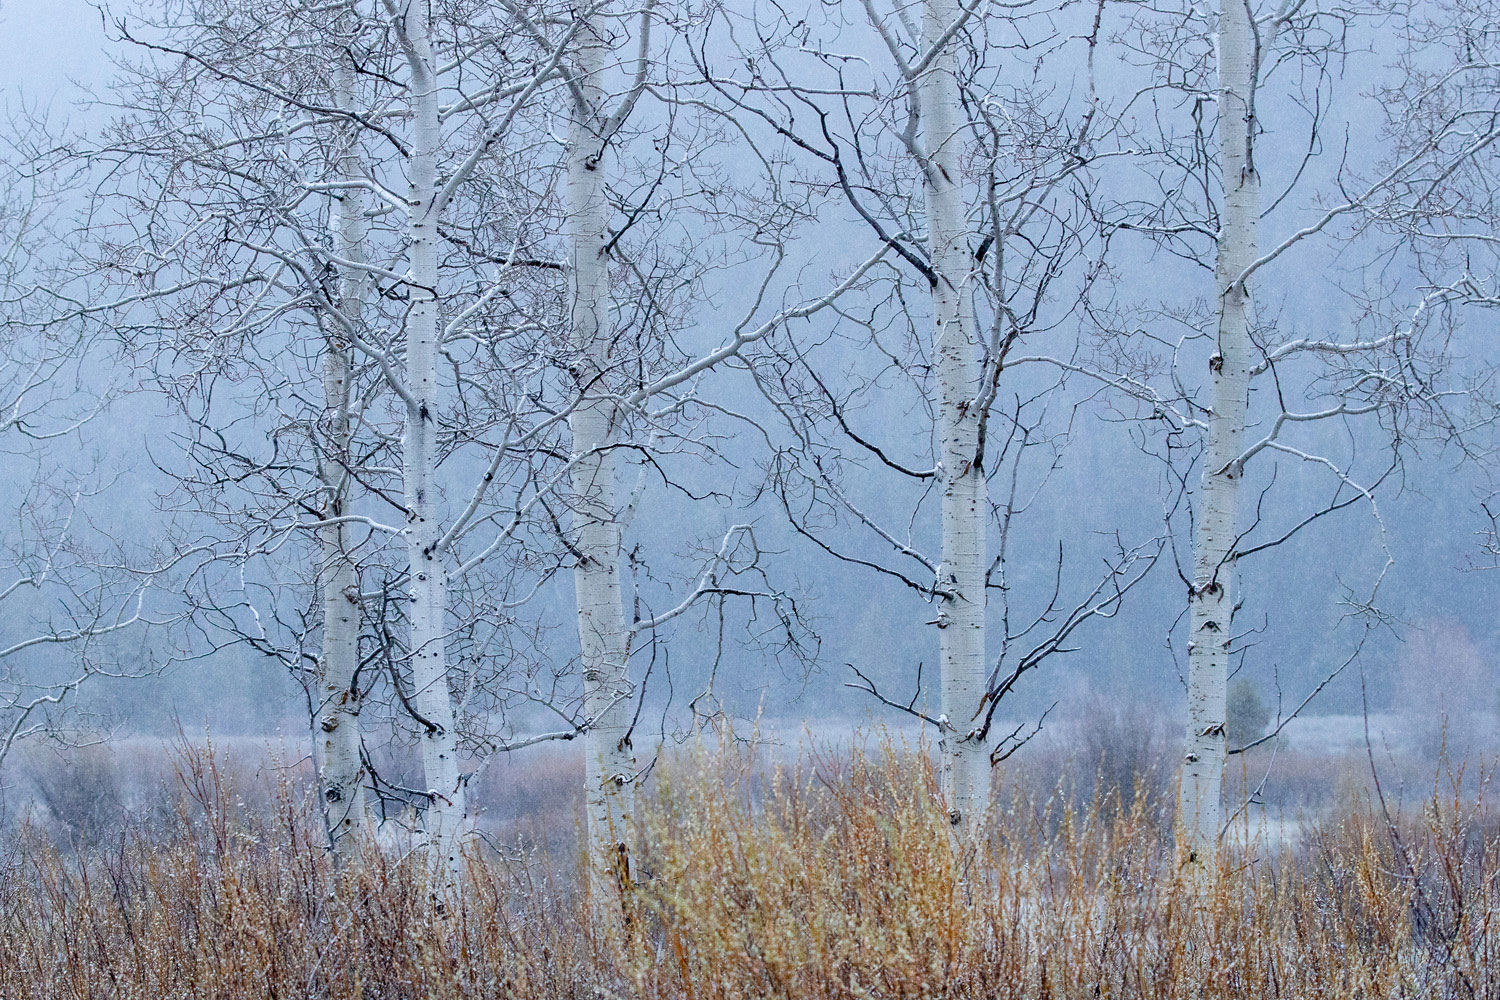 A light snow begins to fall in the meadow behind these aspen.